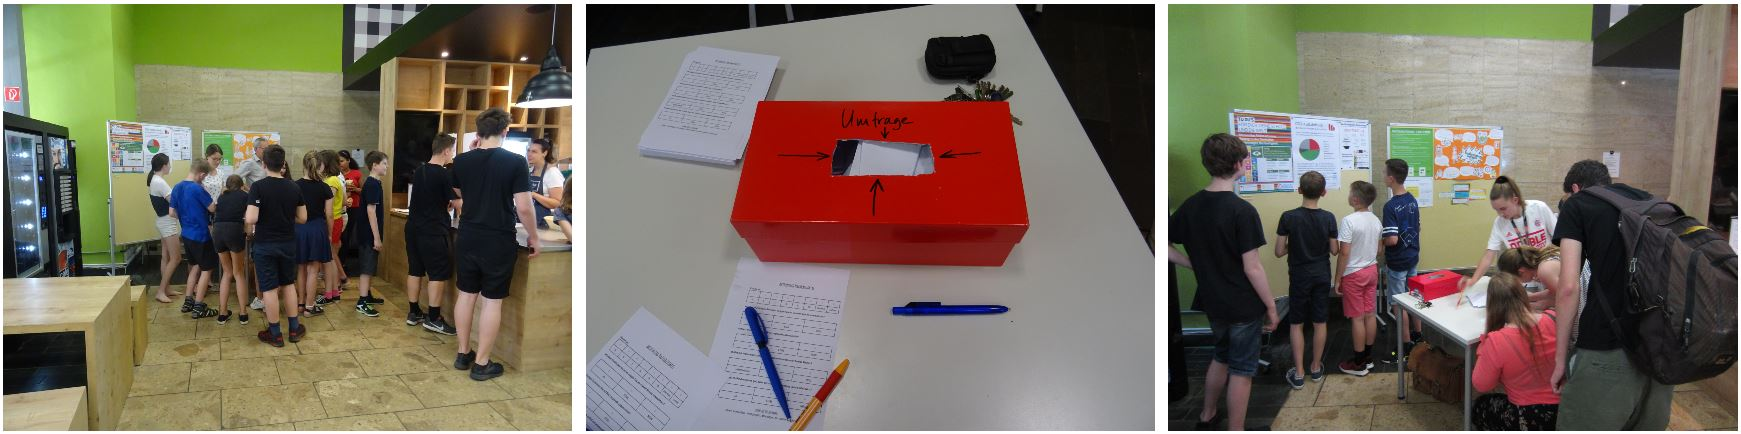 A group of students carried out a poll and informed students about the link between CO2 emission and food consumption.